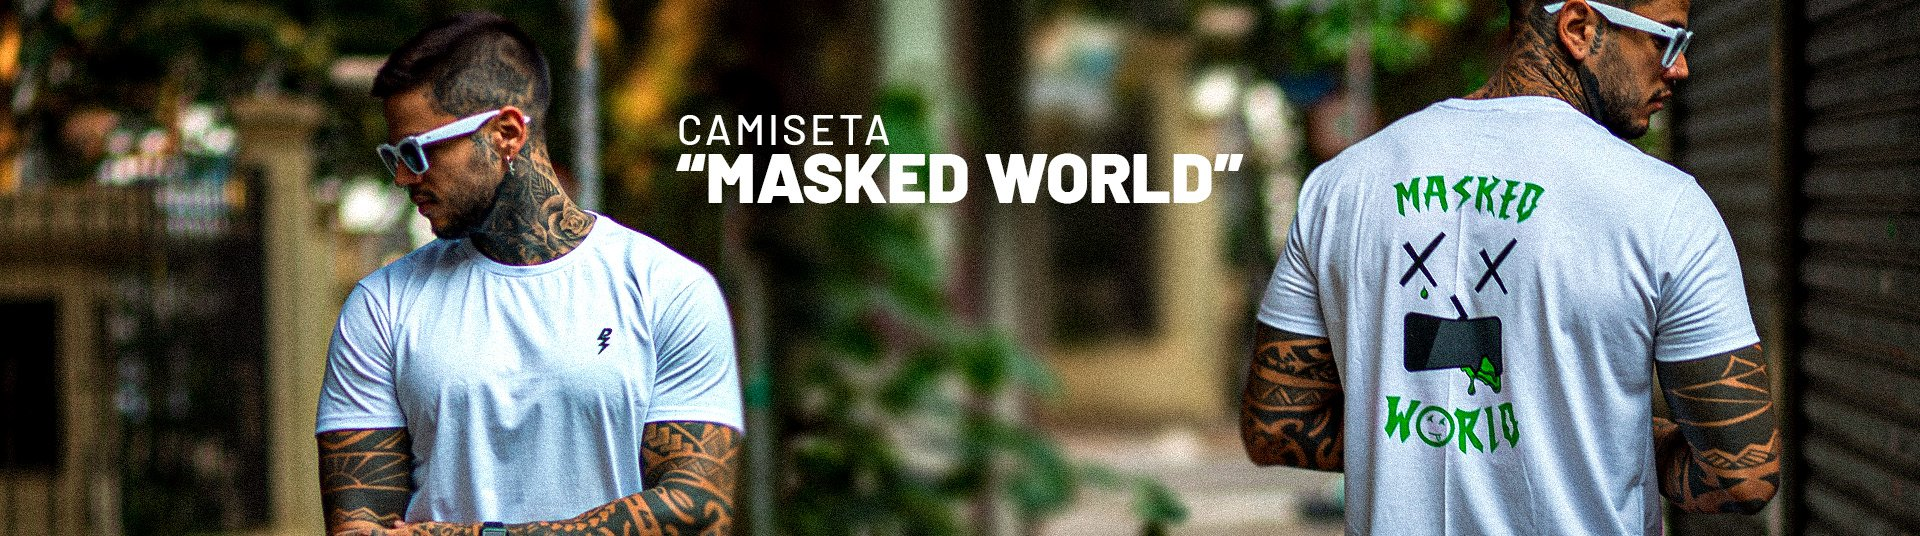 Camiseta Masked World